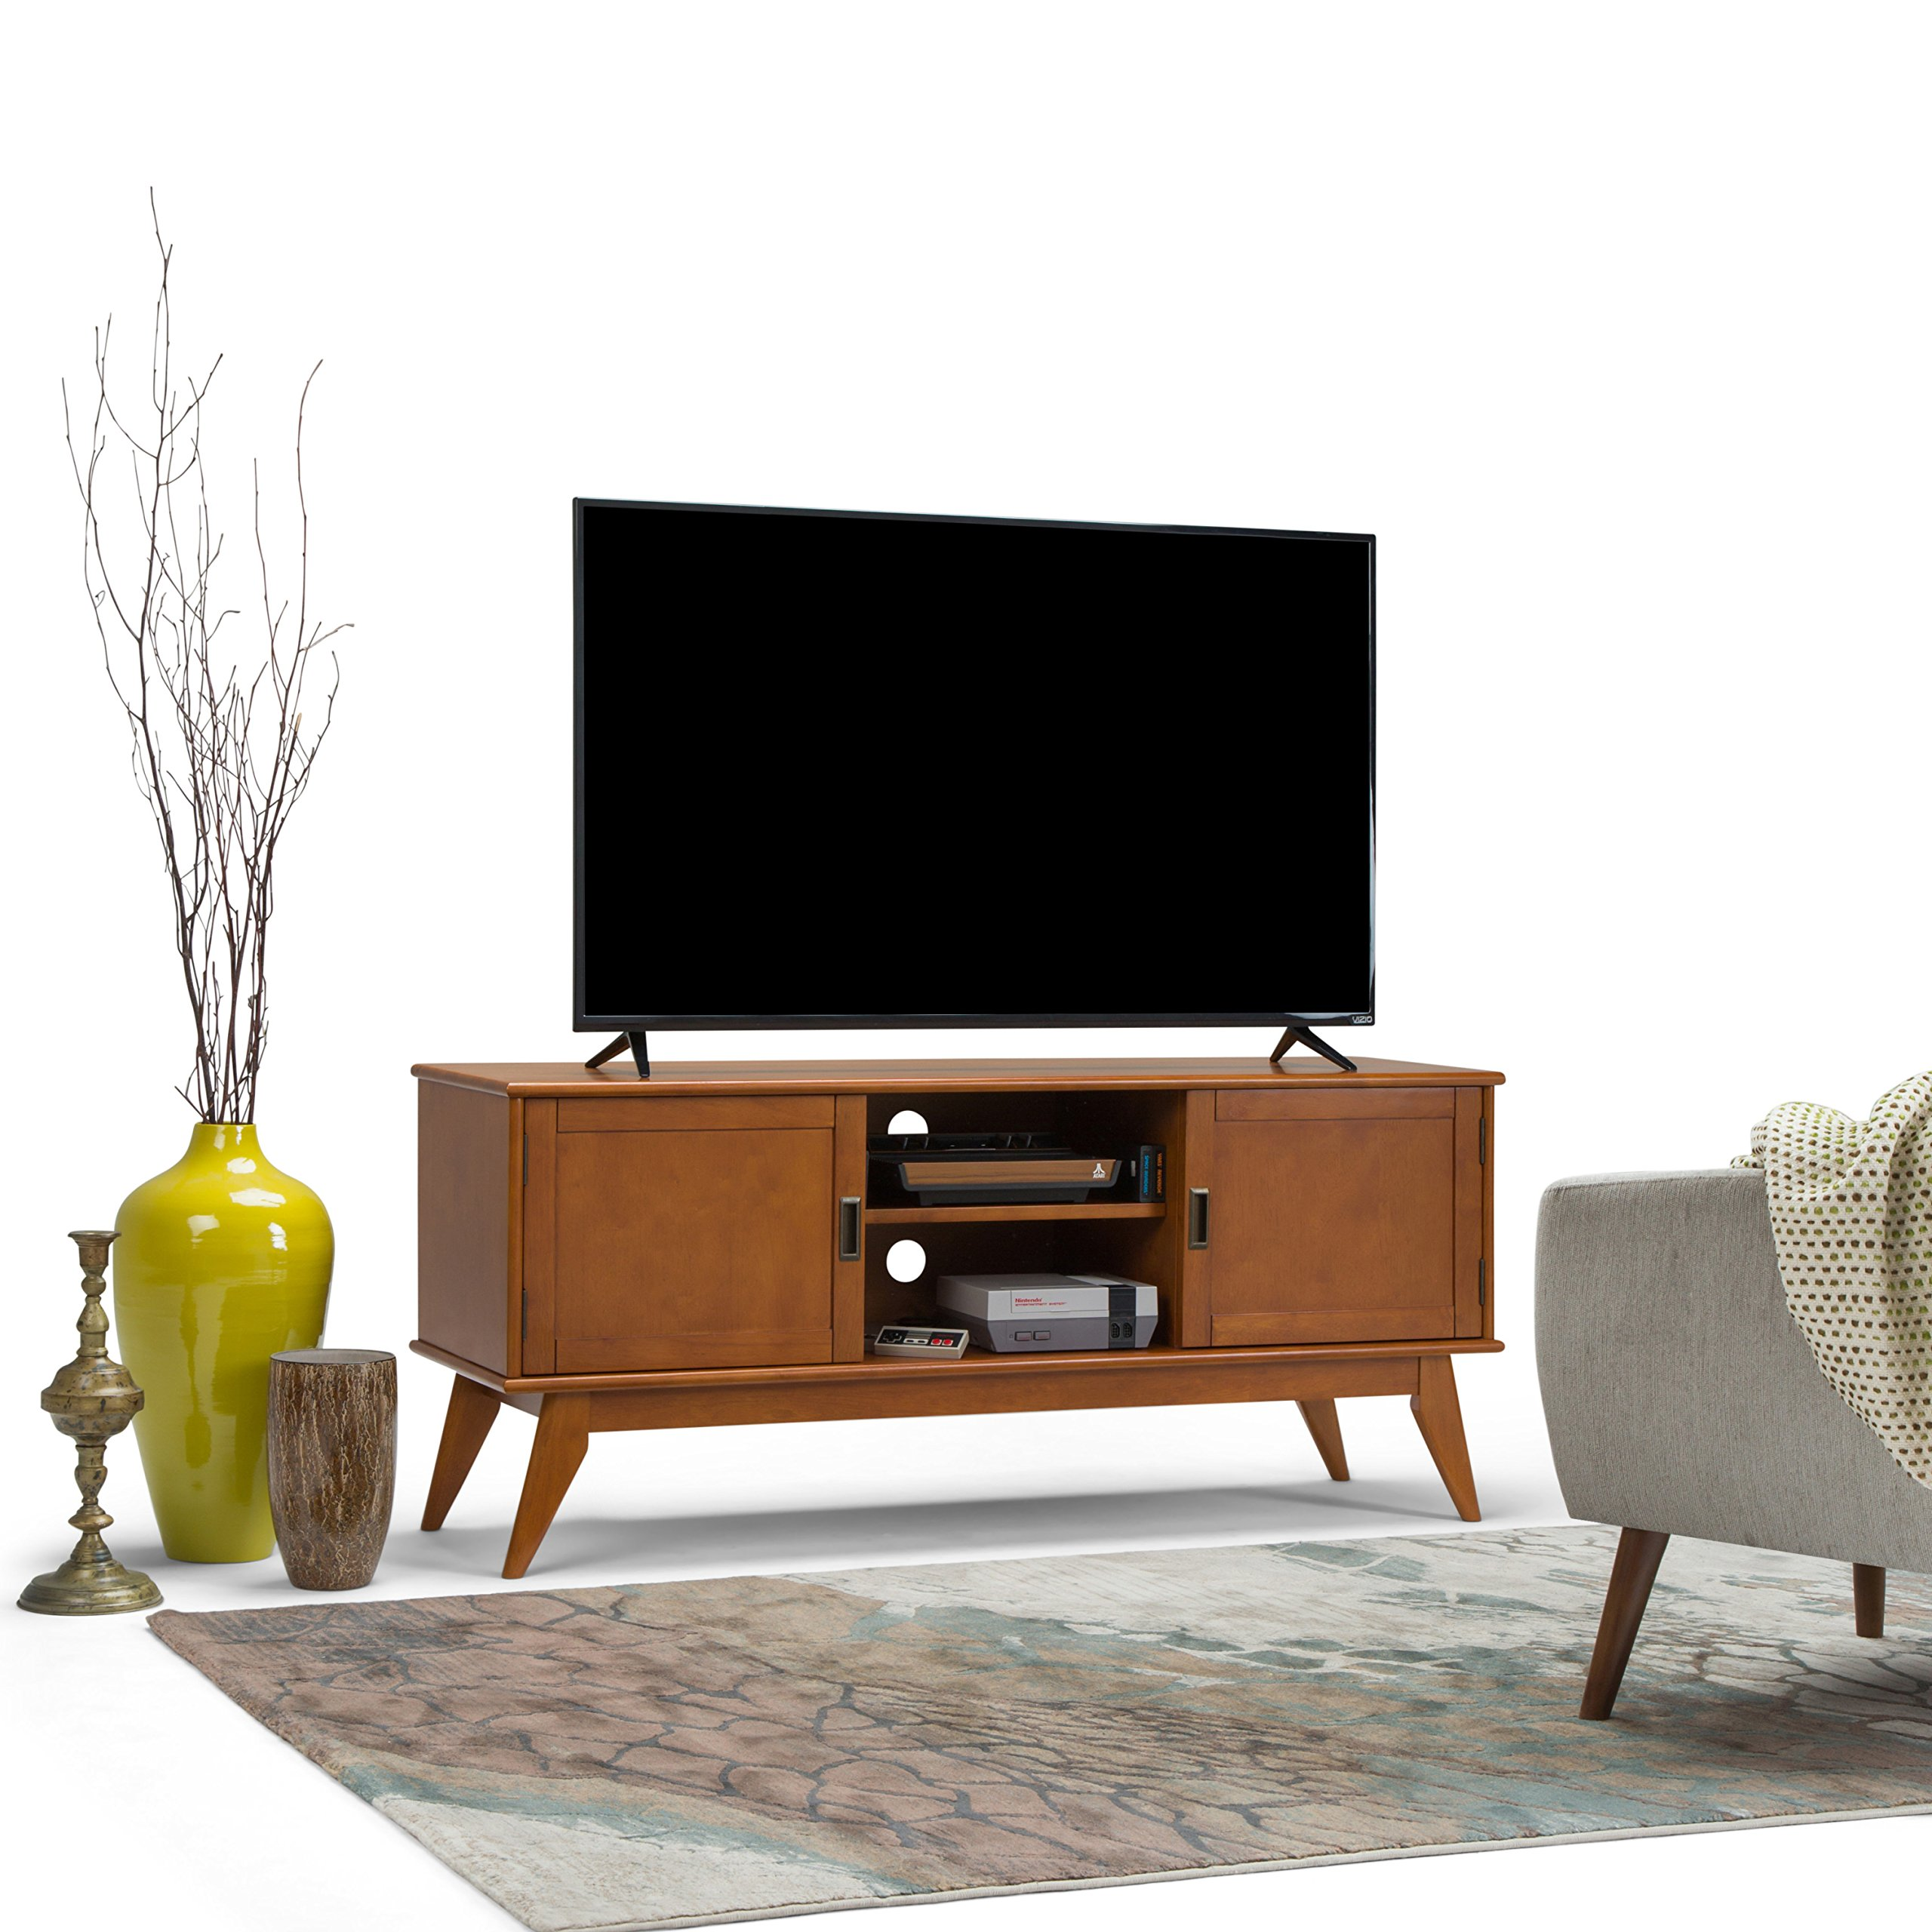 new styles 65f40 2bee1 Simpli Home 3AXCDRP-07-TK Draper Solid Hardwood 60 inch wide Mid Century  Modern TV media Stand in Teak Brown For TVs up to 65 inches